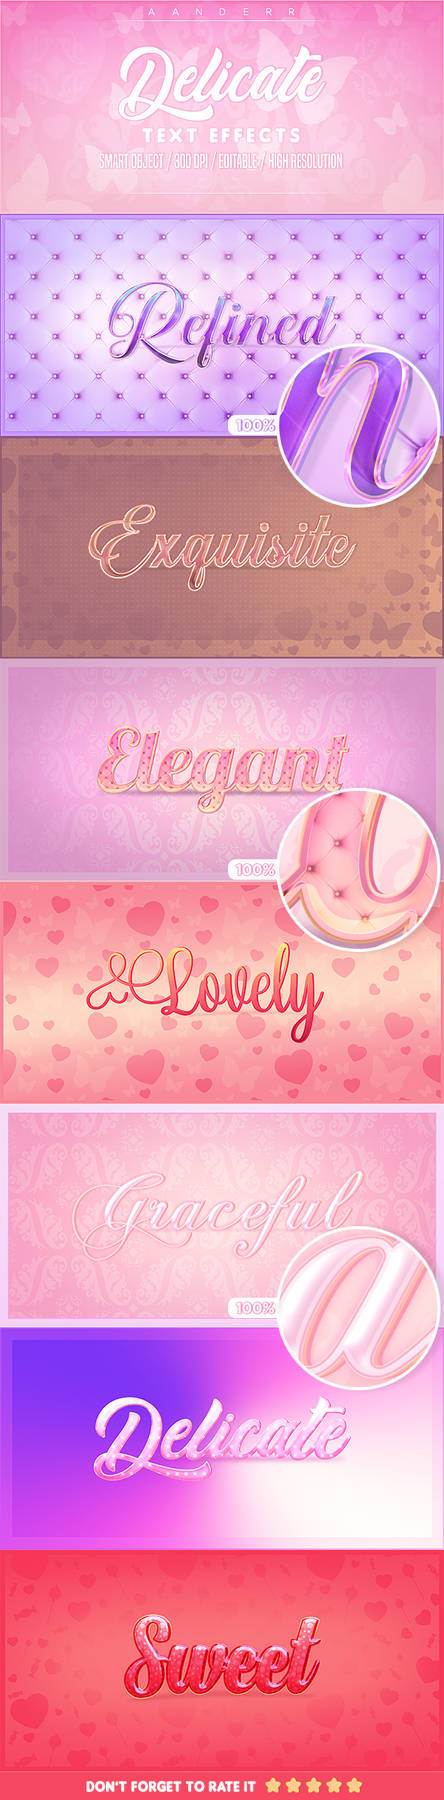 Delicate Photoshop Text Effects (Professional)